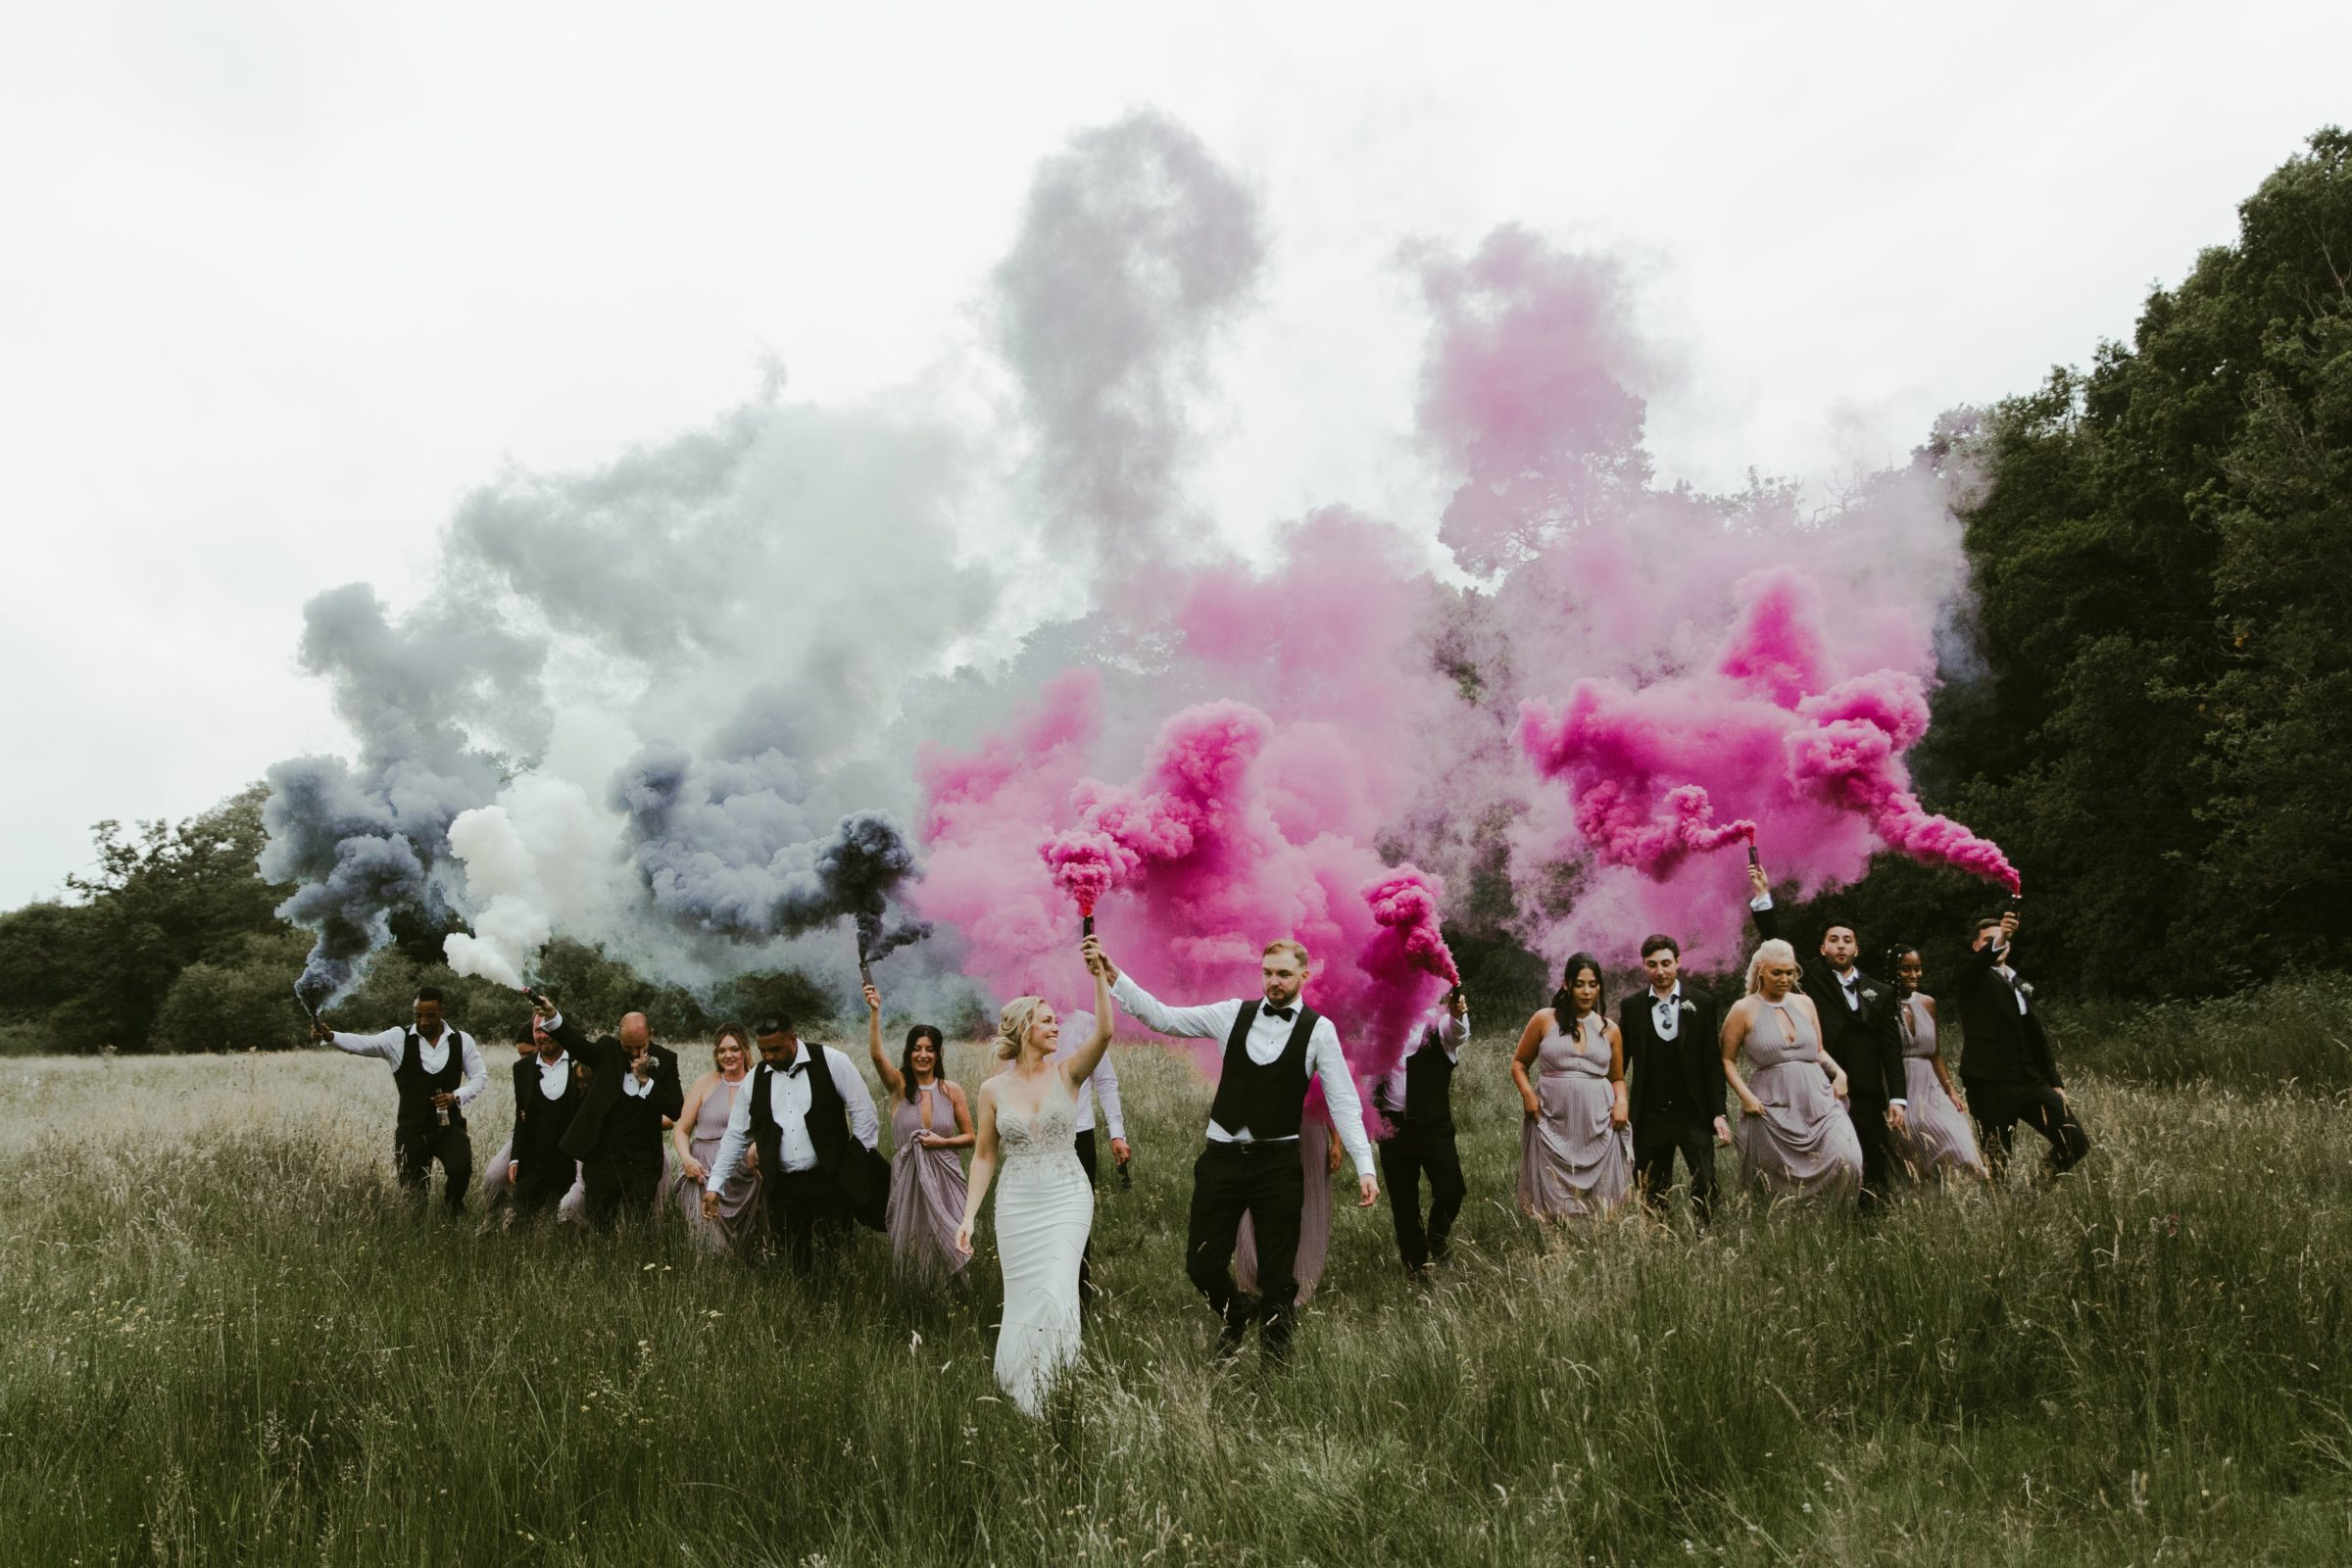 millbridge-court-wedding-venue-frensham-farnham-surrey-uk-photography-photographer-bridal-party-smoke-bombs-flares-fun